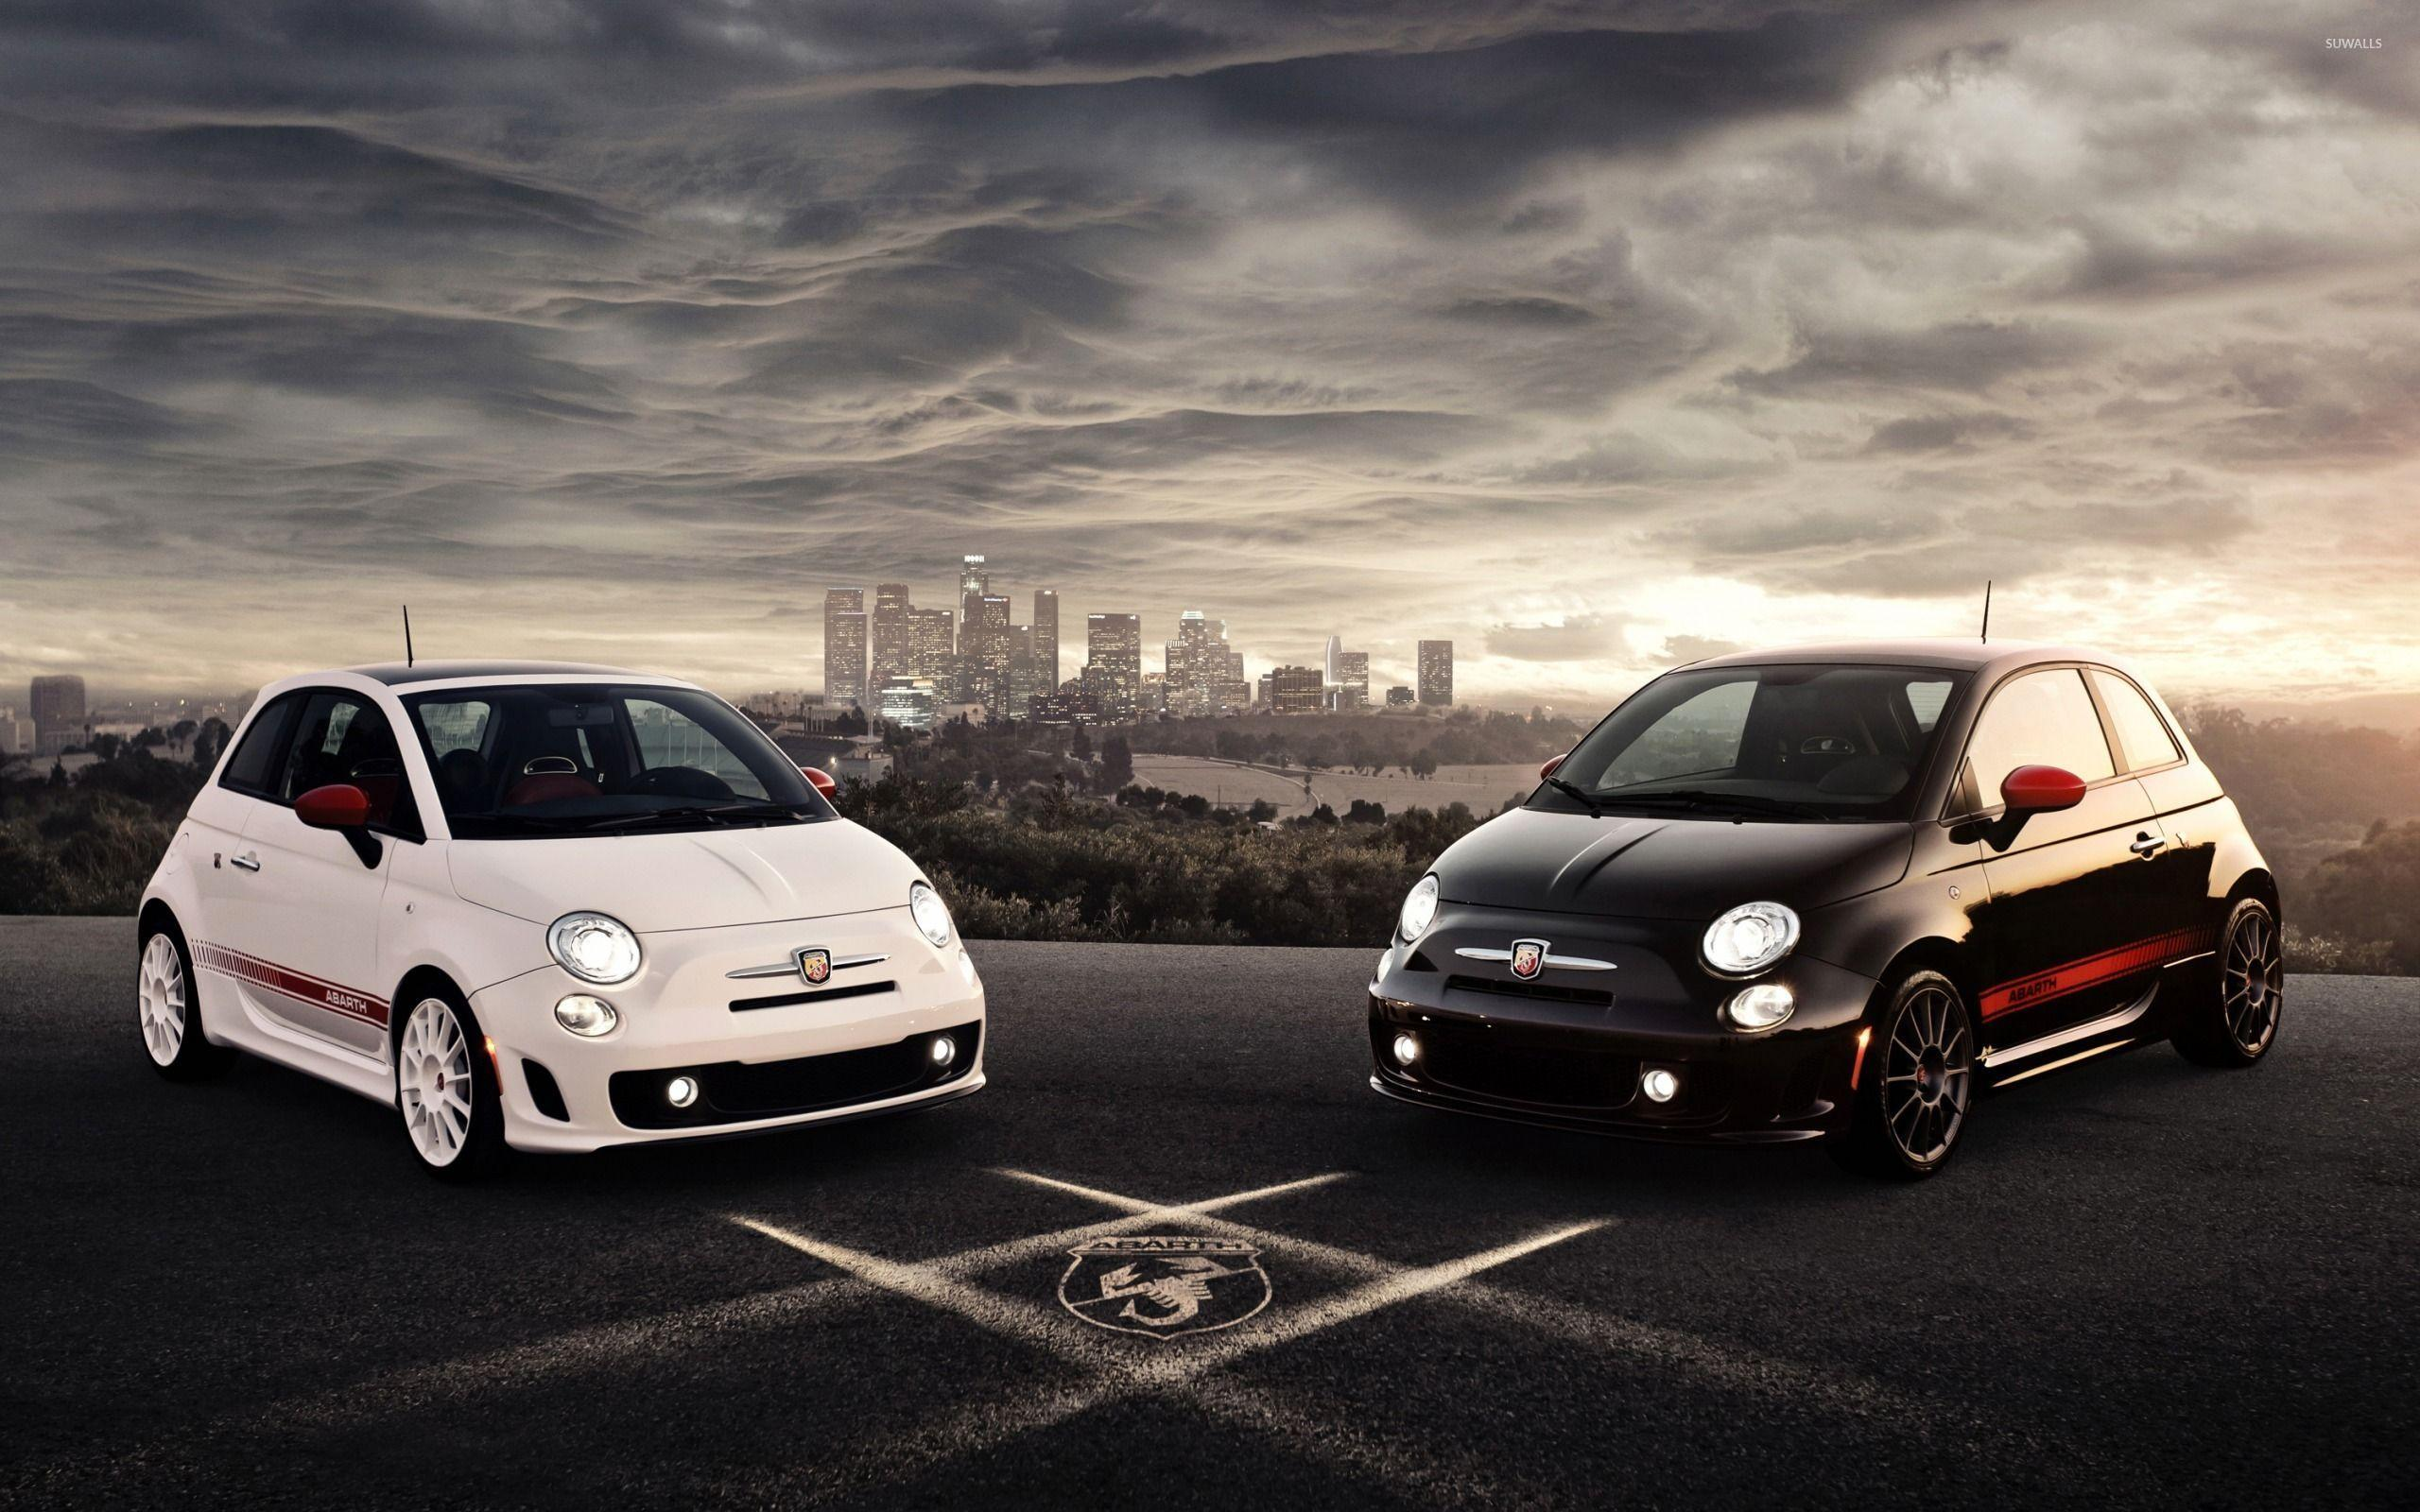 Abarth Fiat 500 wallpaper - Car wallpapers - #46773